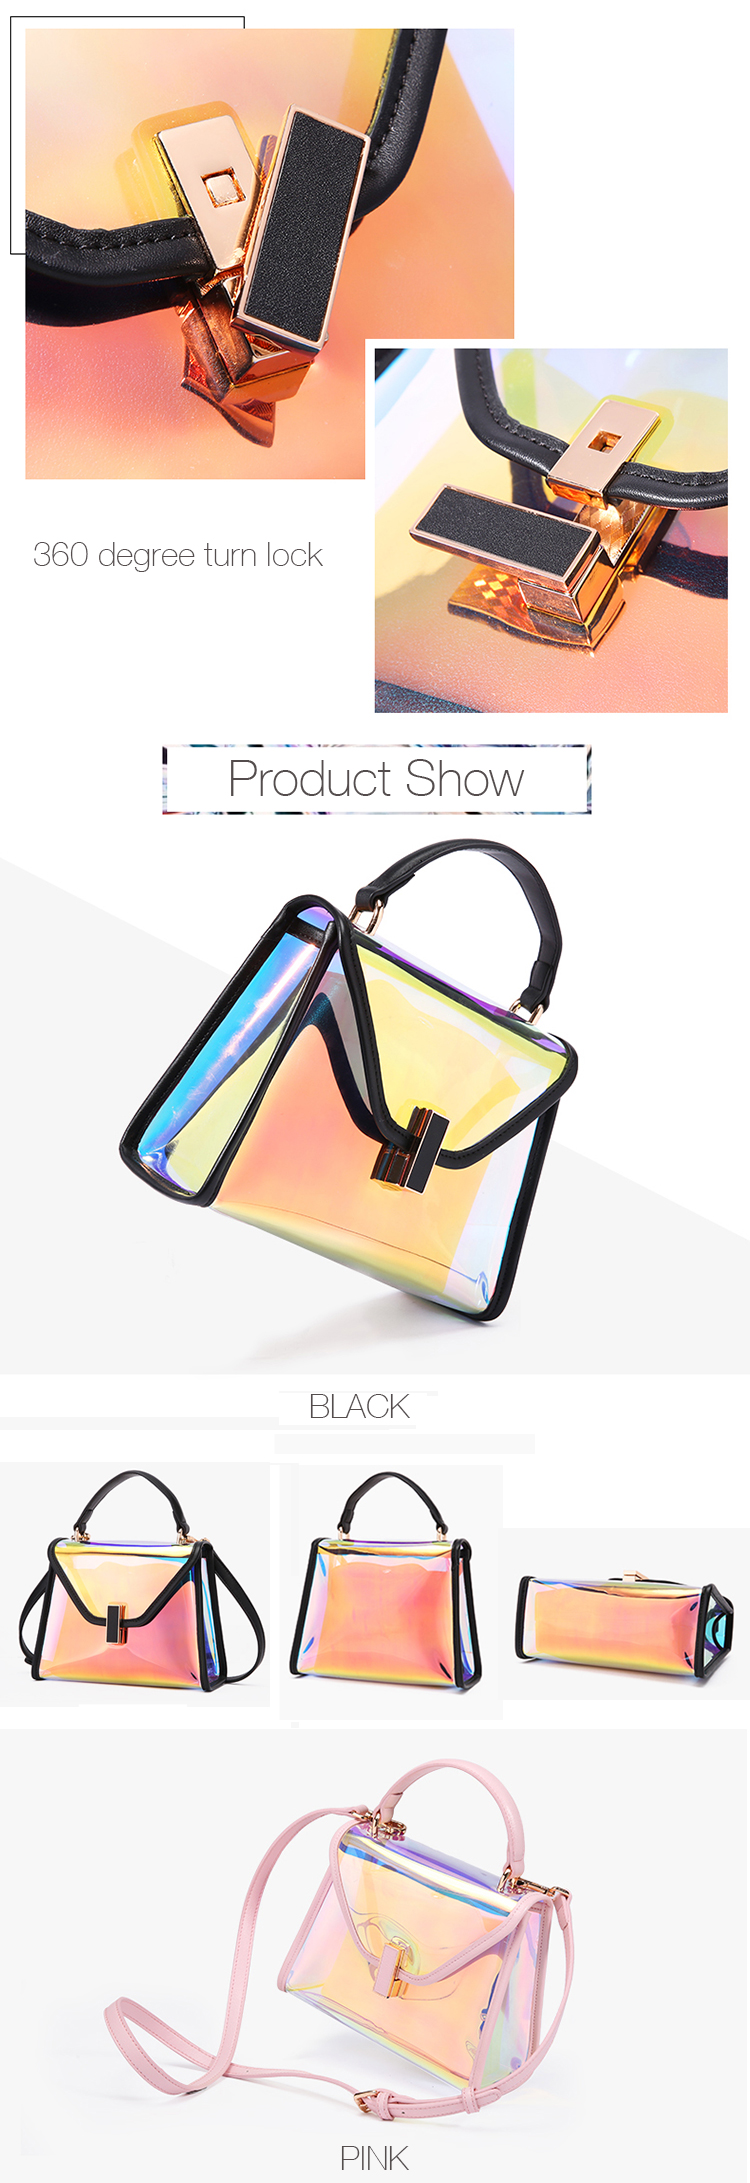 holographic-purse2_03